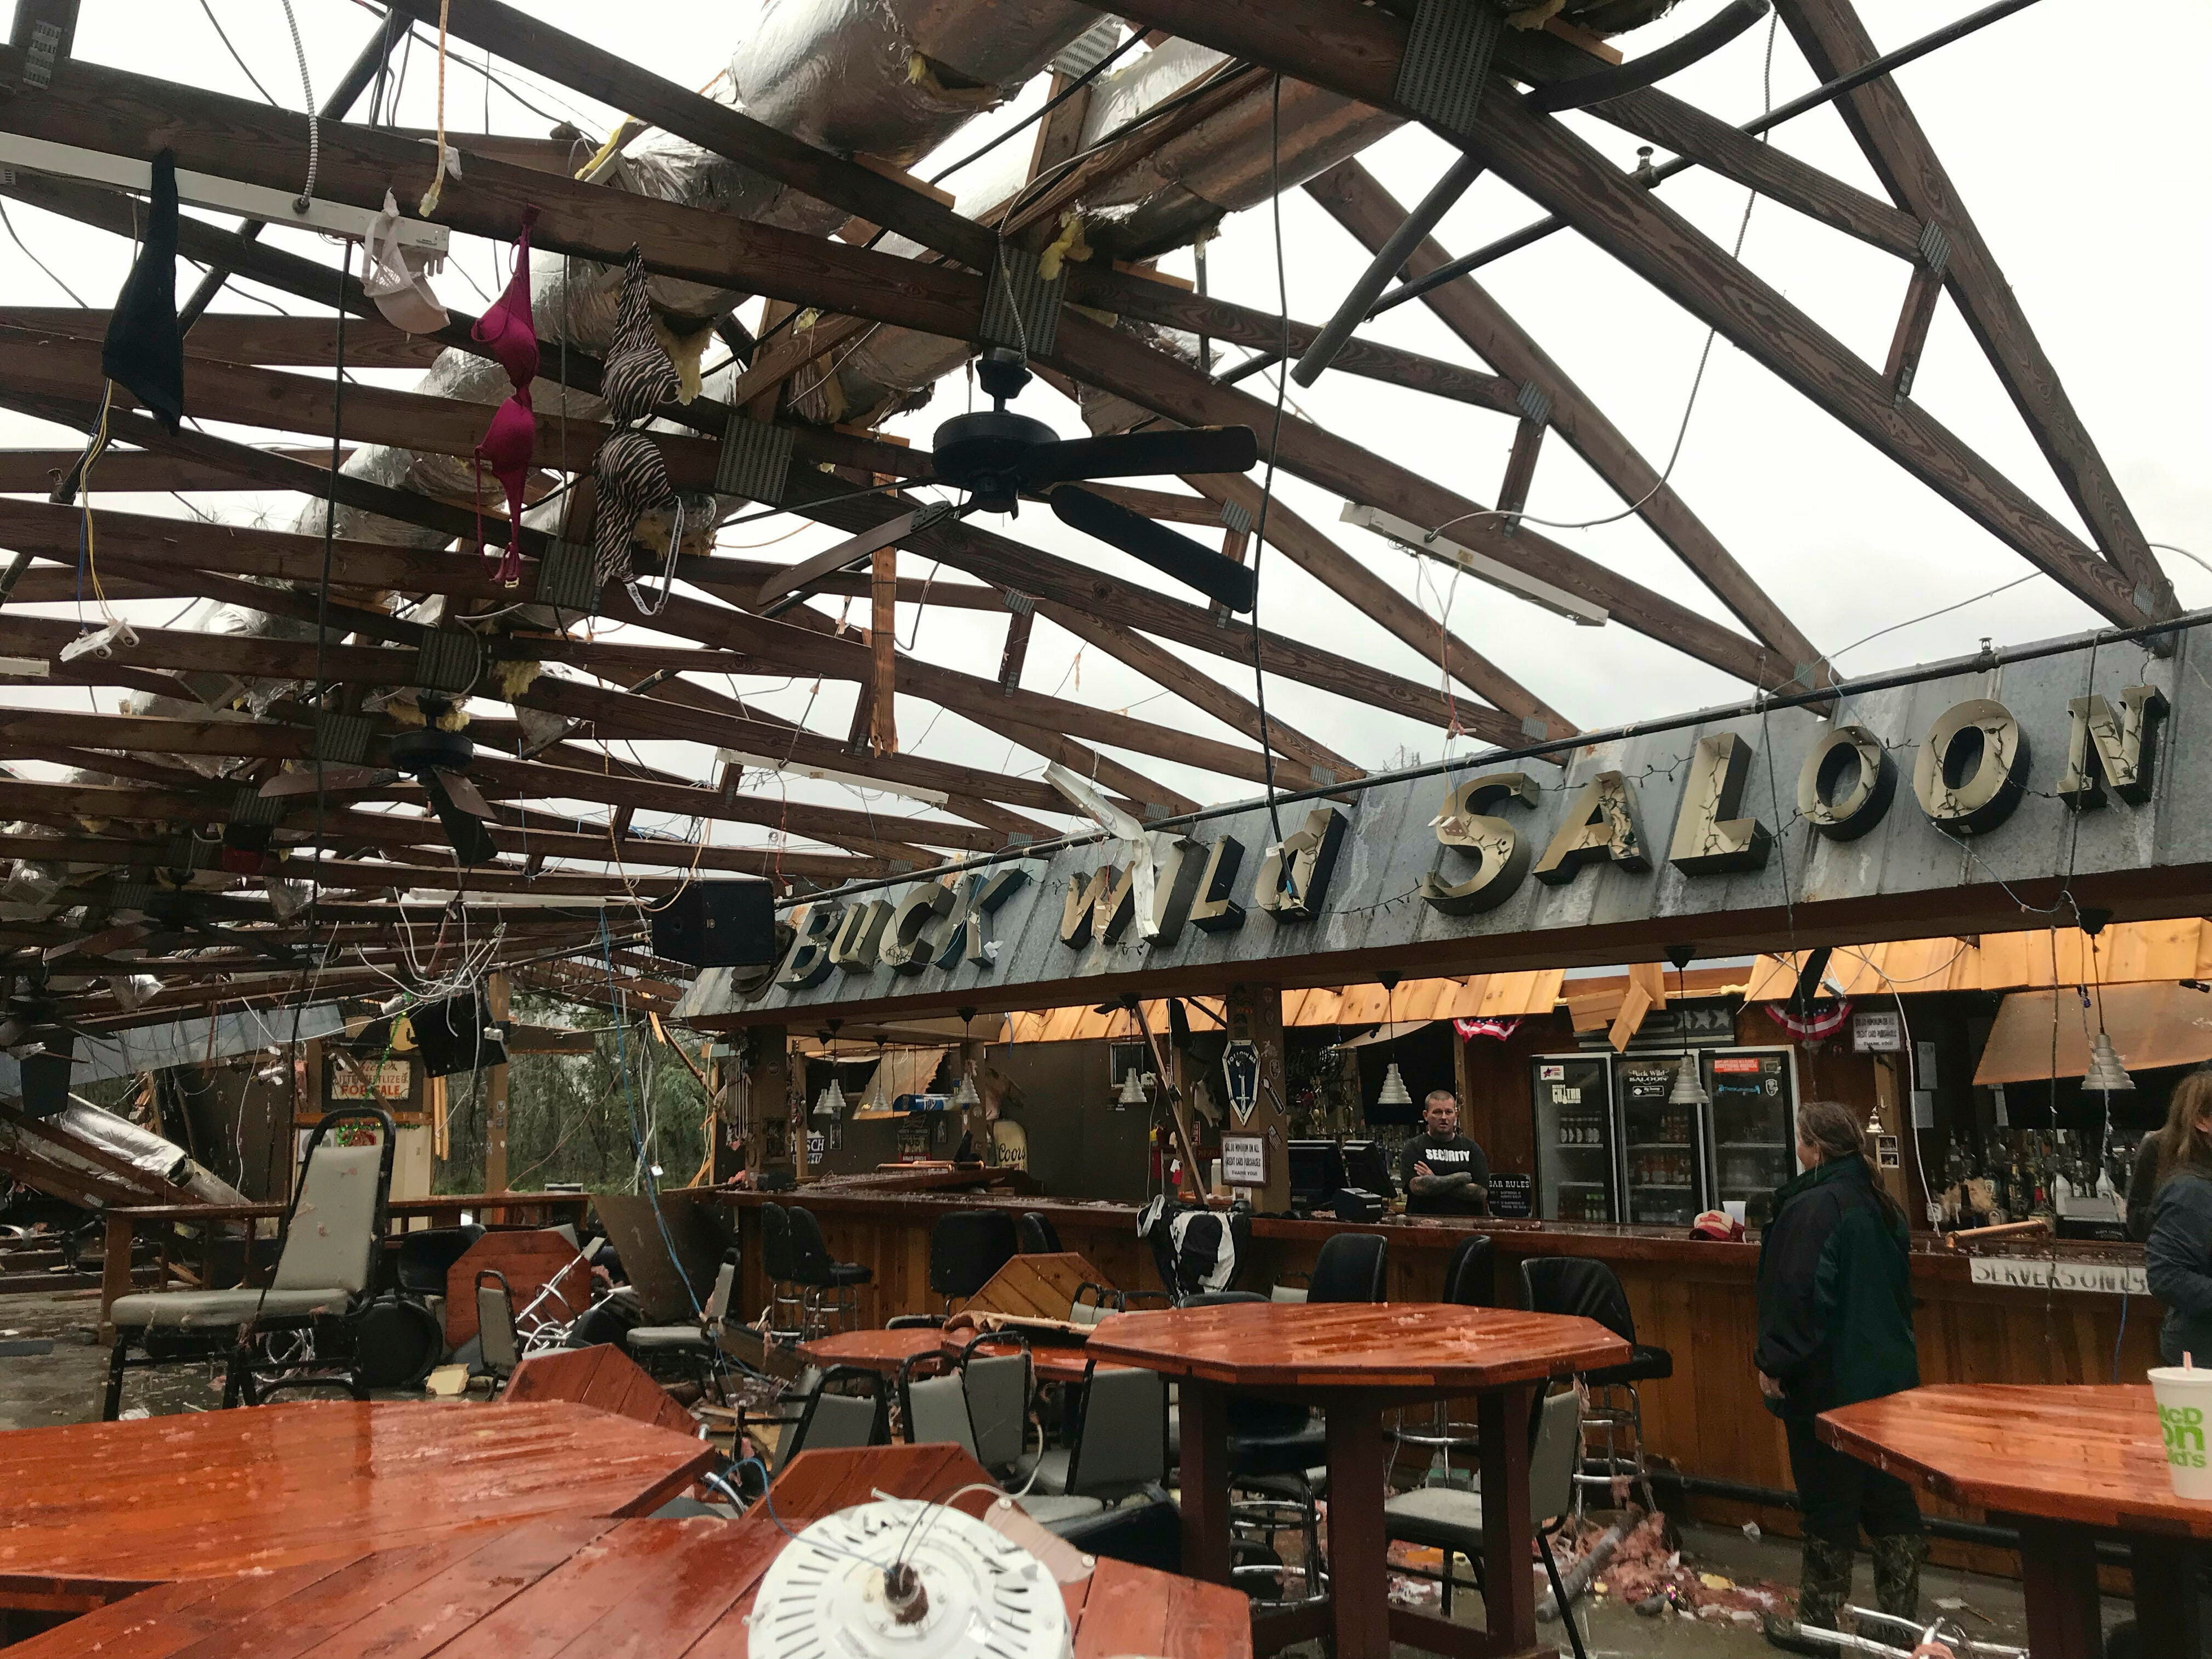 This photo shows some damage at the Buck Wild Saloon, located on U.S. Highway 280, east of Smiths Station, Ala., Sunday, March 3, 2019, after a powerful storm system passed through the area. (Kara Coleman Fields/Opelika-Auburn News via AP) ORG XMIT: ALOPEI35